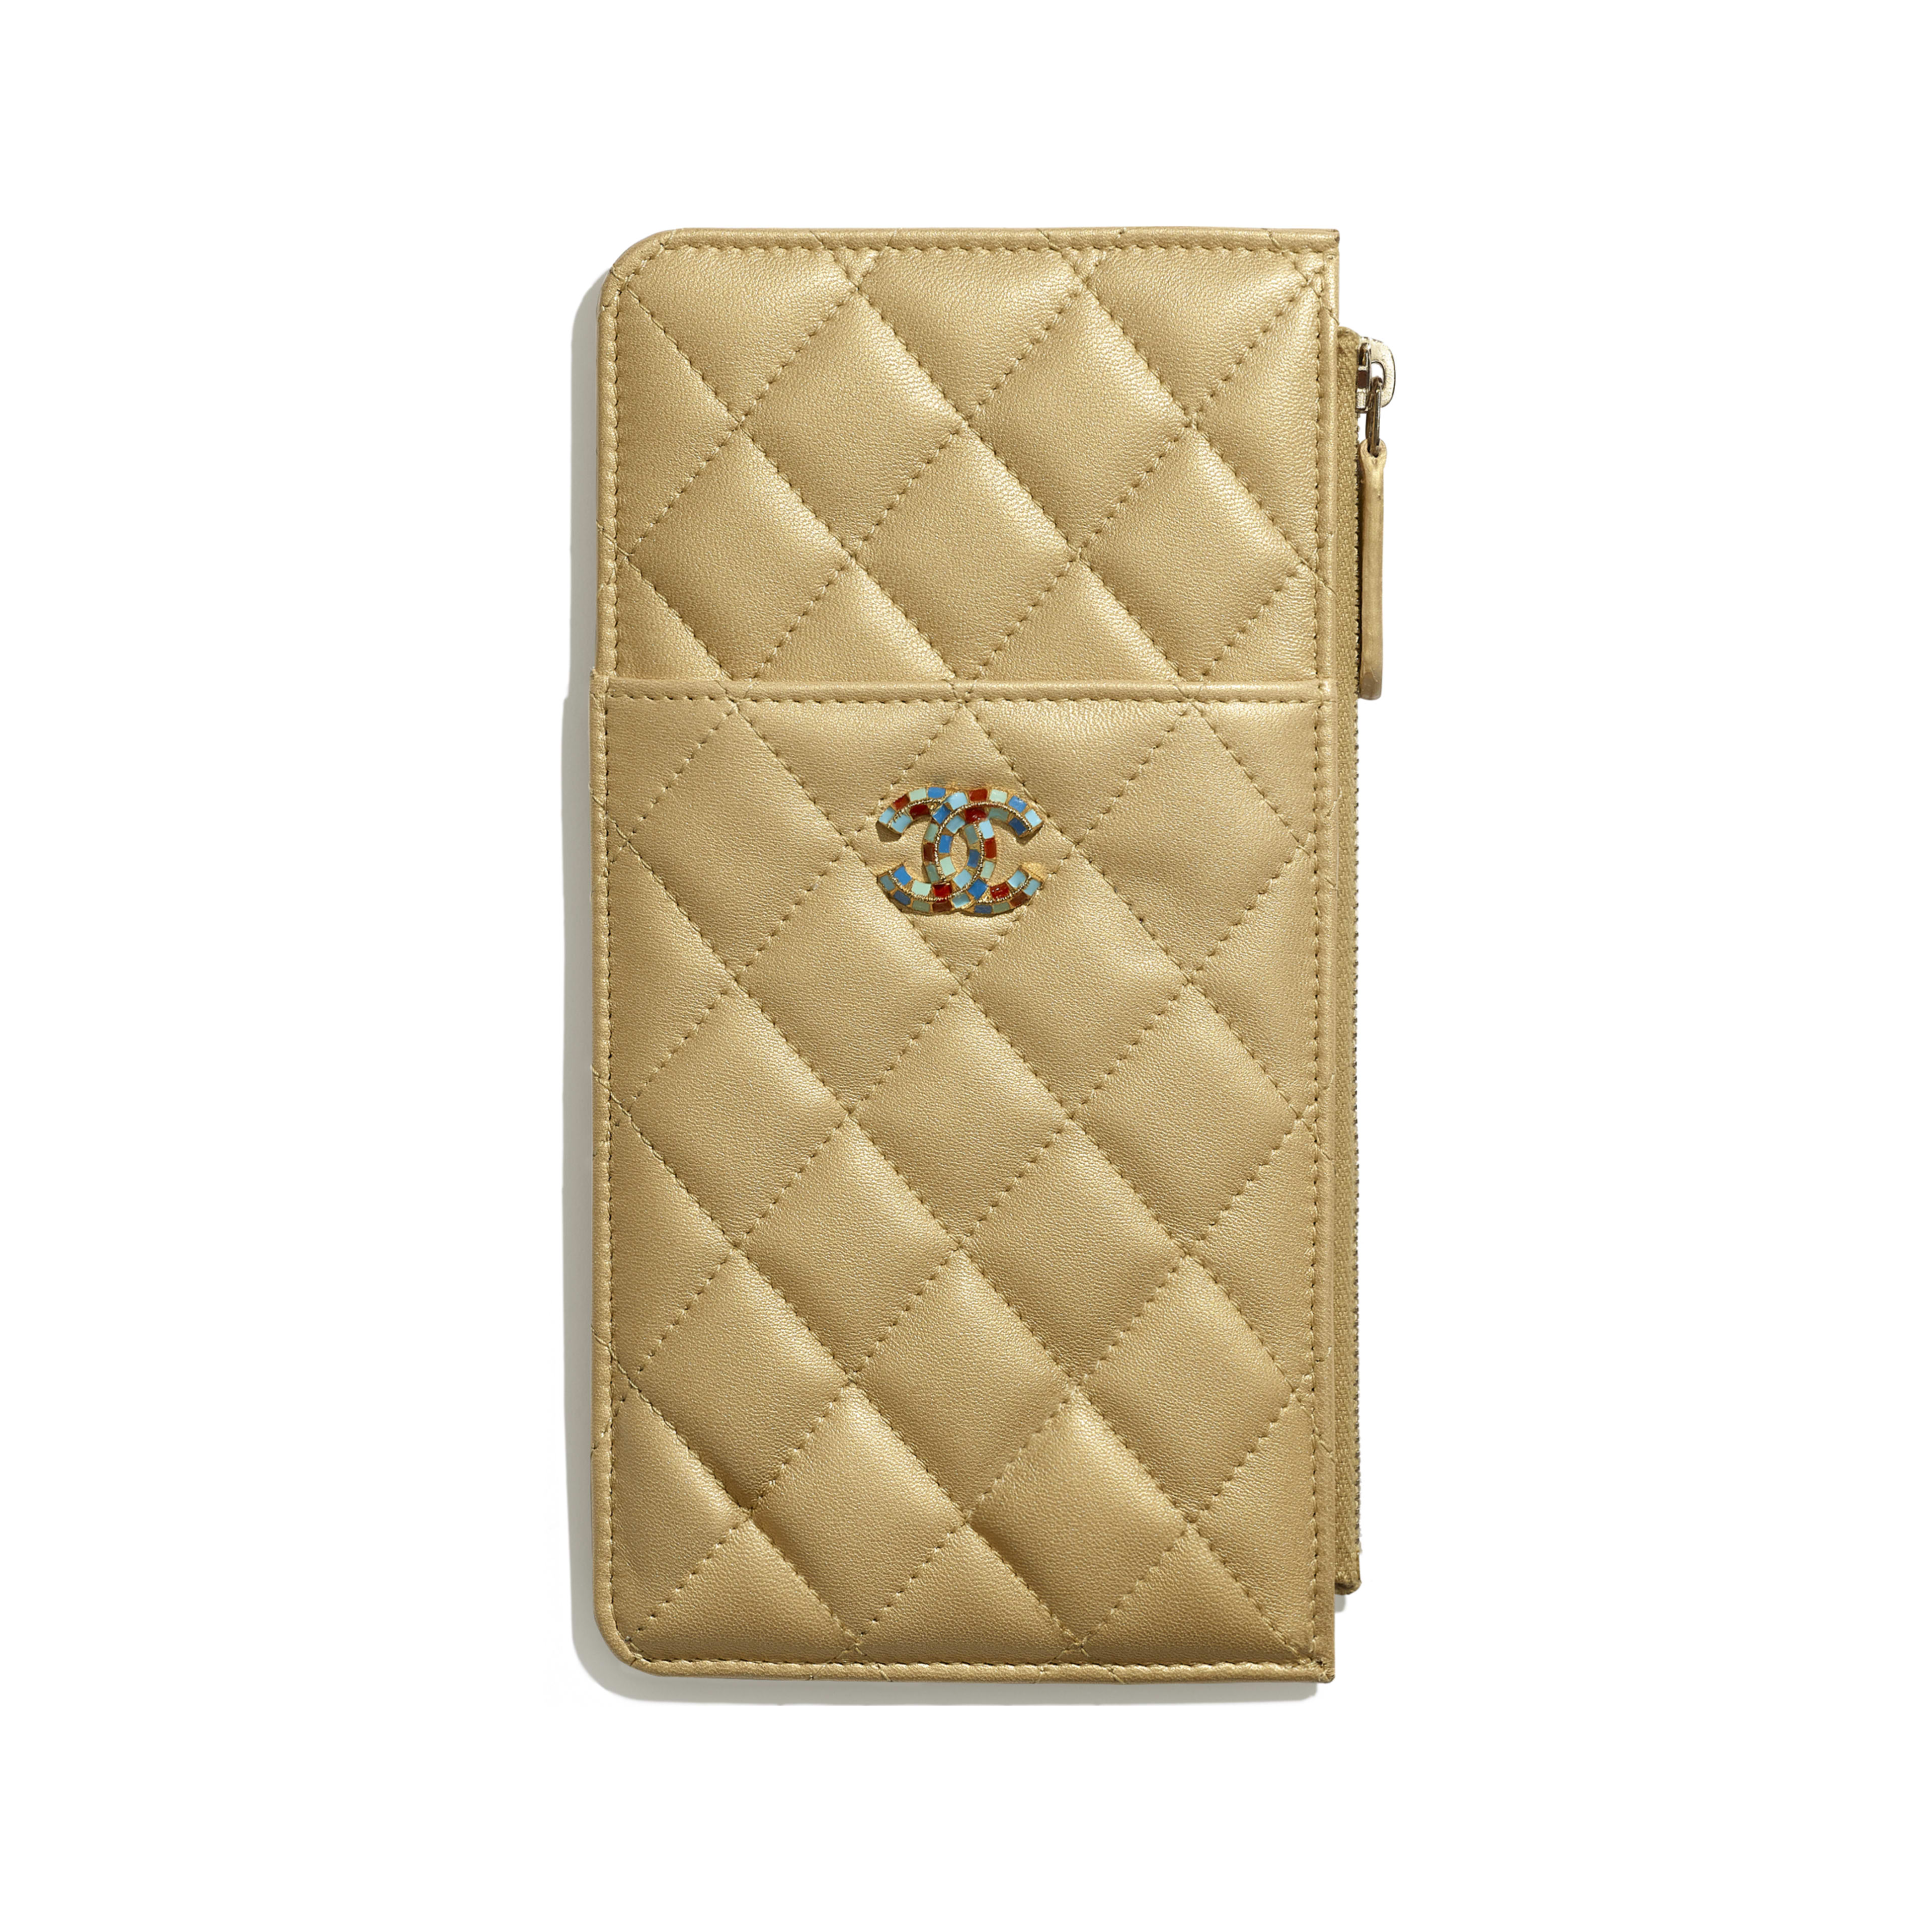 Pouch - Gold - Metallic Lambskin & Gold-Tone Metal - Default view - see full sized version